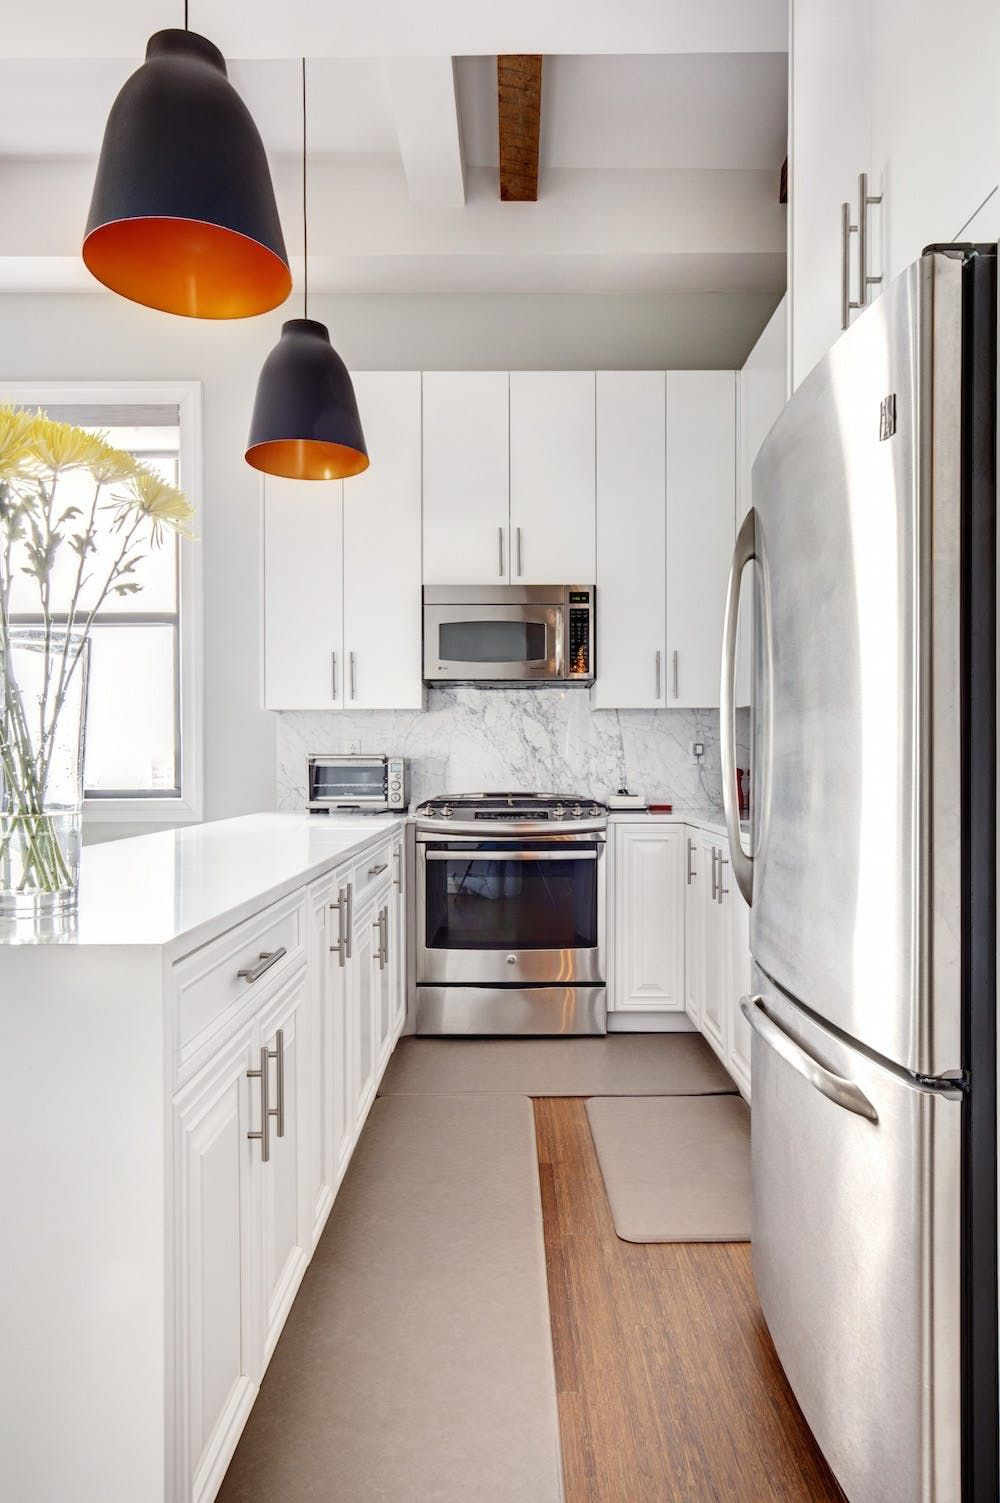 Before & After: A Sophisticated Apartment Kitchen Remodel ...